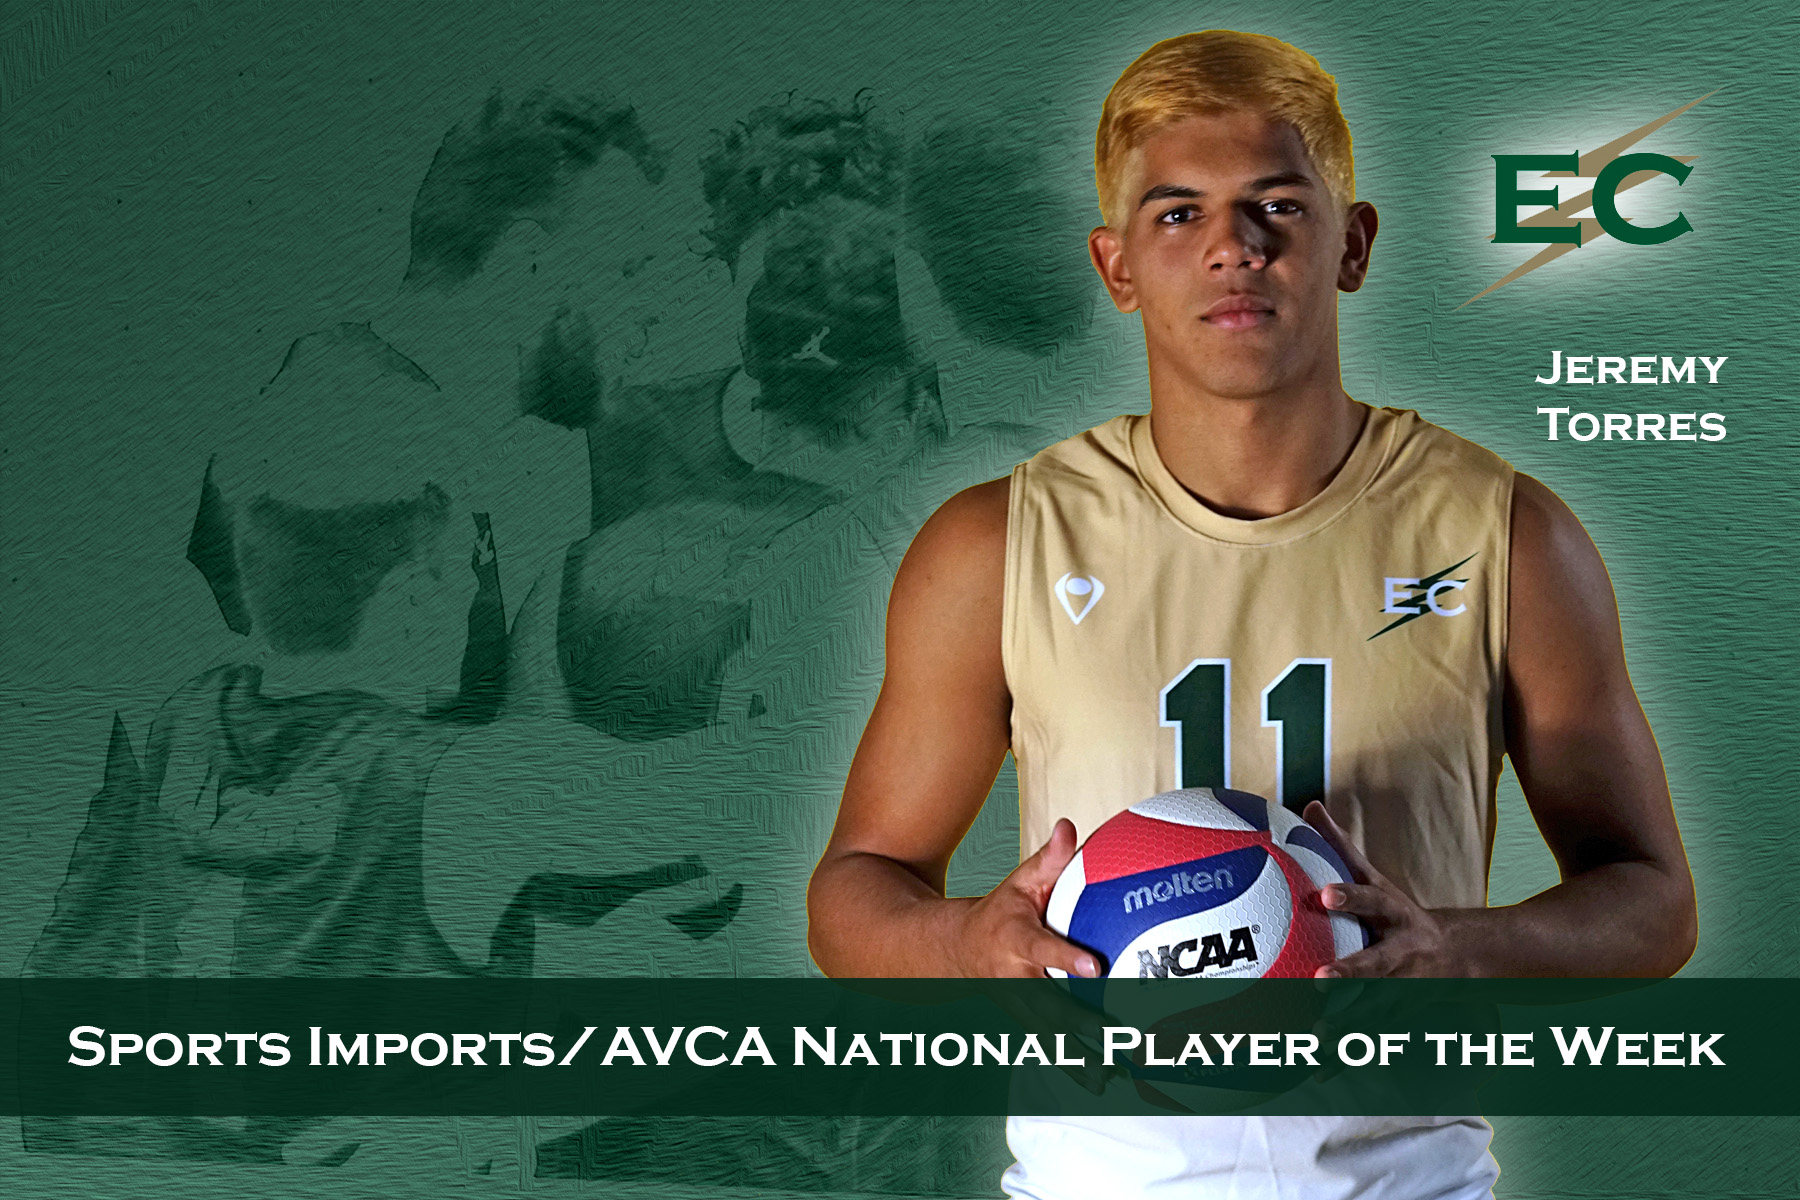 Jeremy Torres Selected As AVCA National Player Of The Week